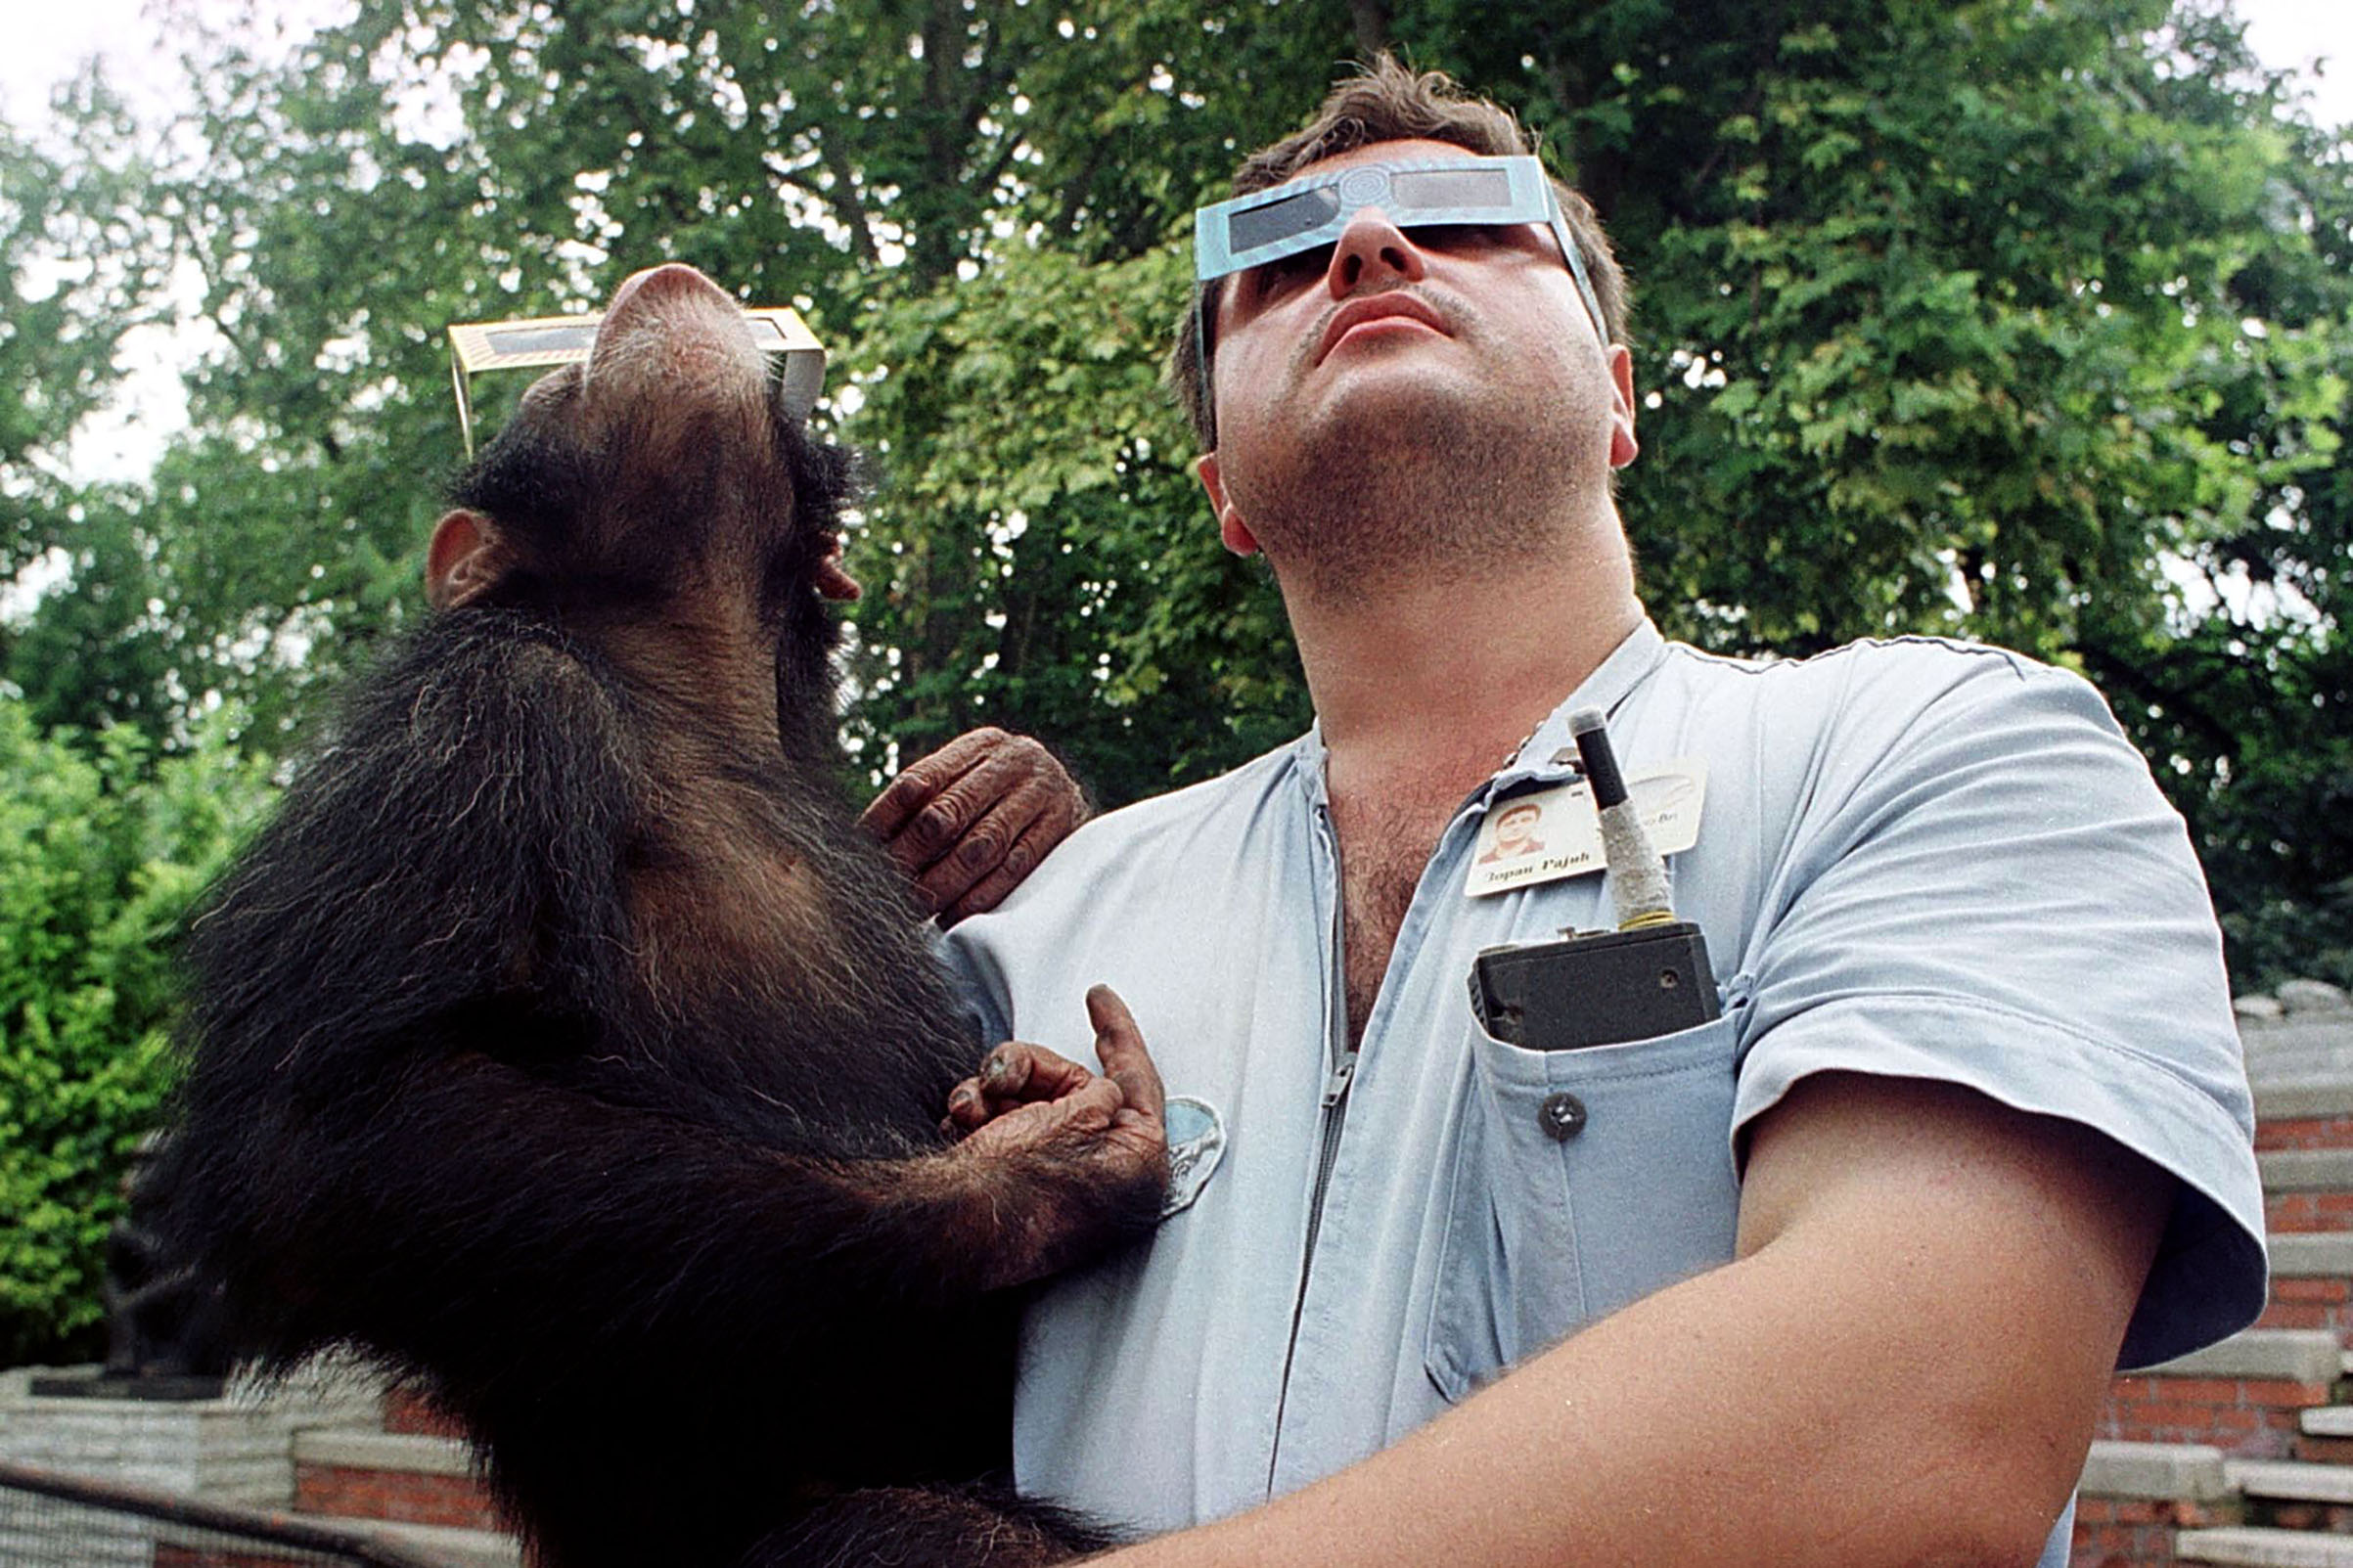 A Belgrade zookeeper holds a young chimpanzee Olgica wearing solar viewing glasses while they look up into the sky to watch the solar eclipse as it passes over the Yugoslav capital.